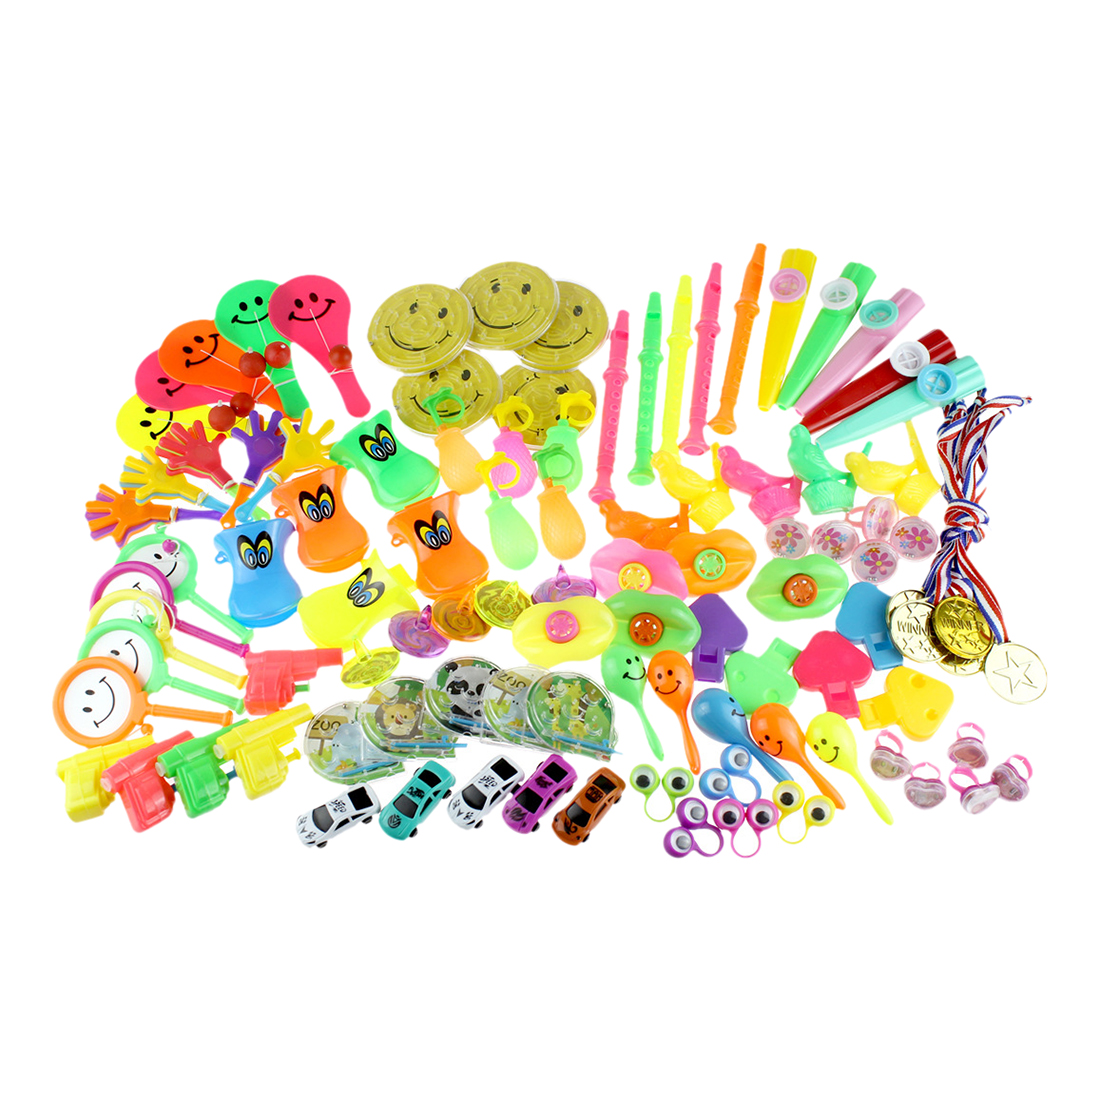 100Pcs Children Small Toy Prop Set For Party - 20 Type Mixed